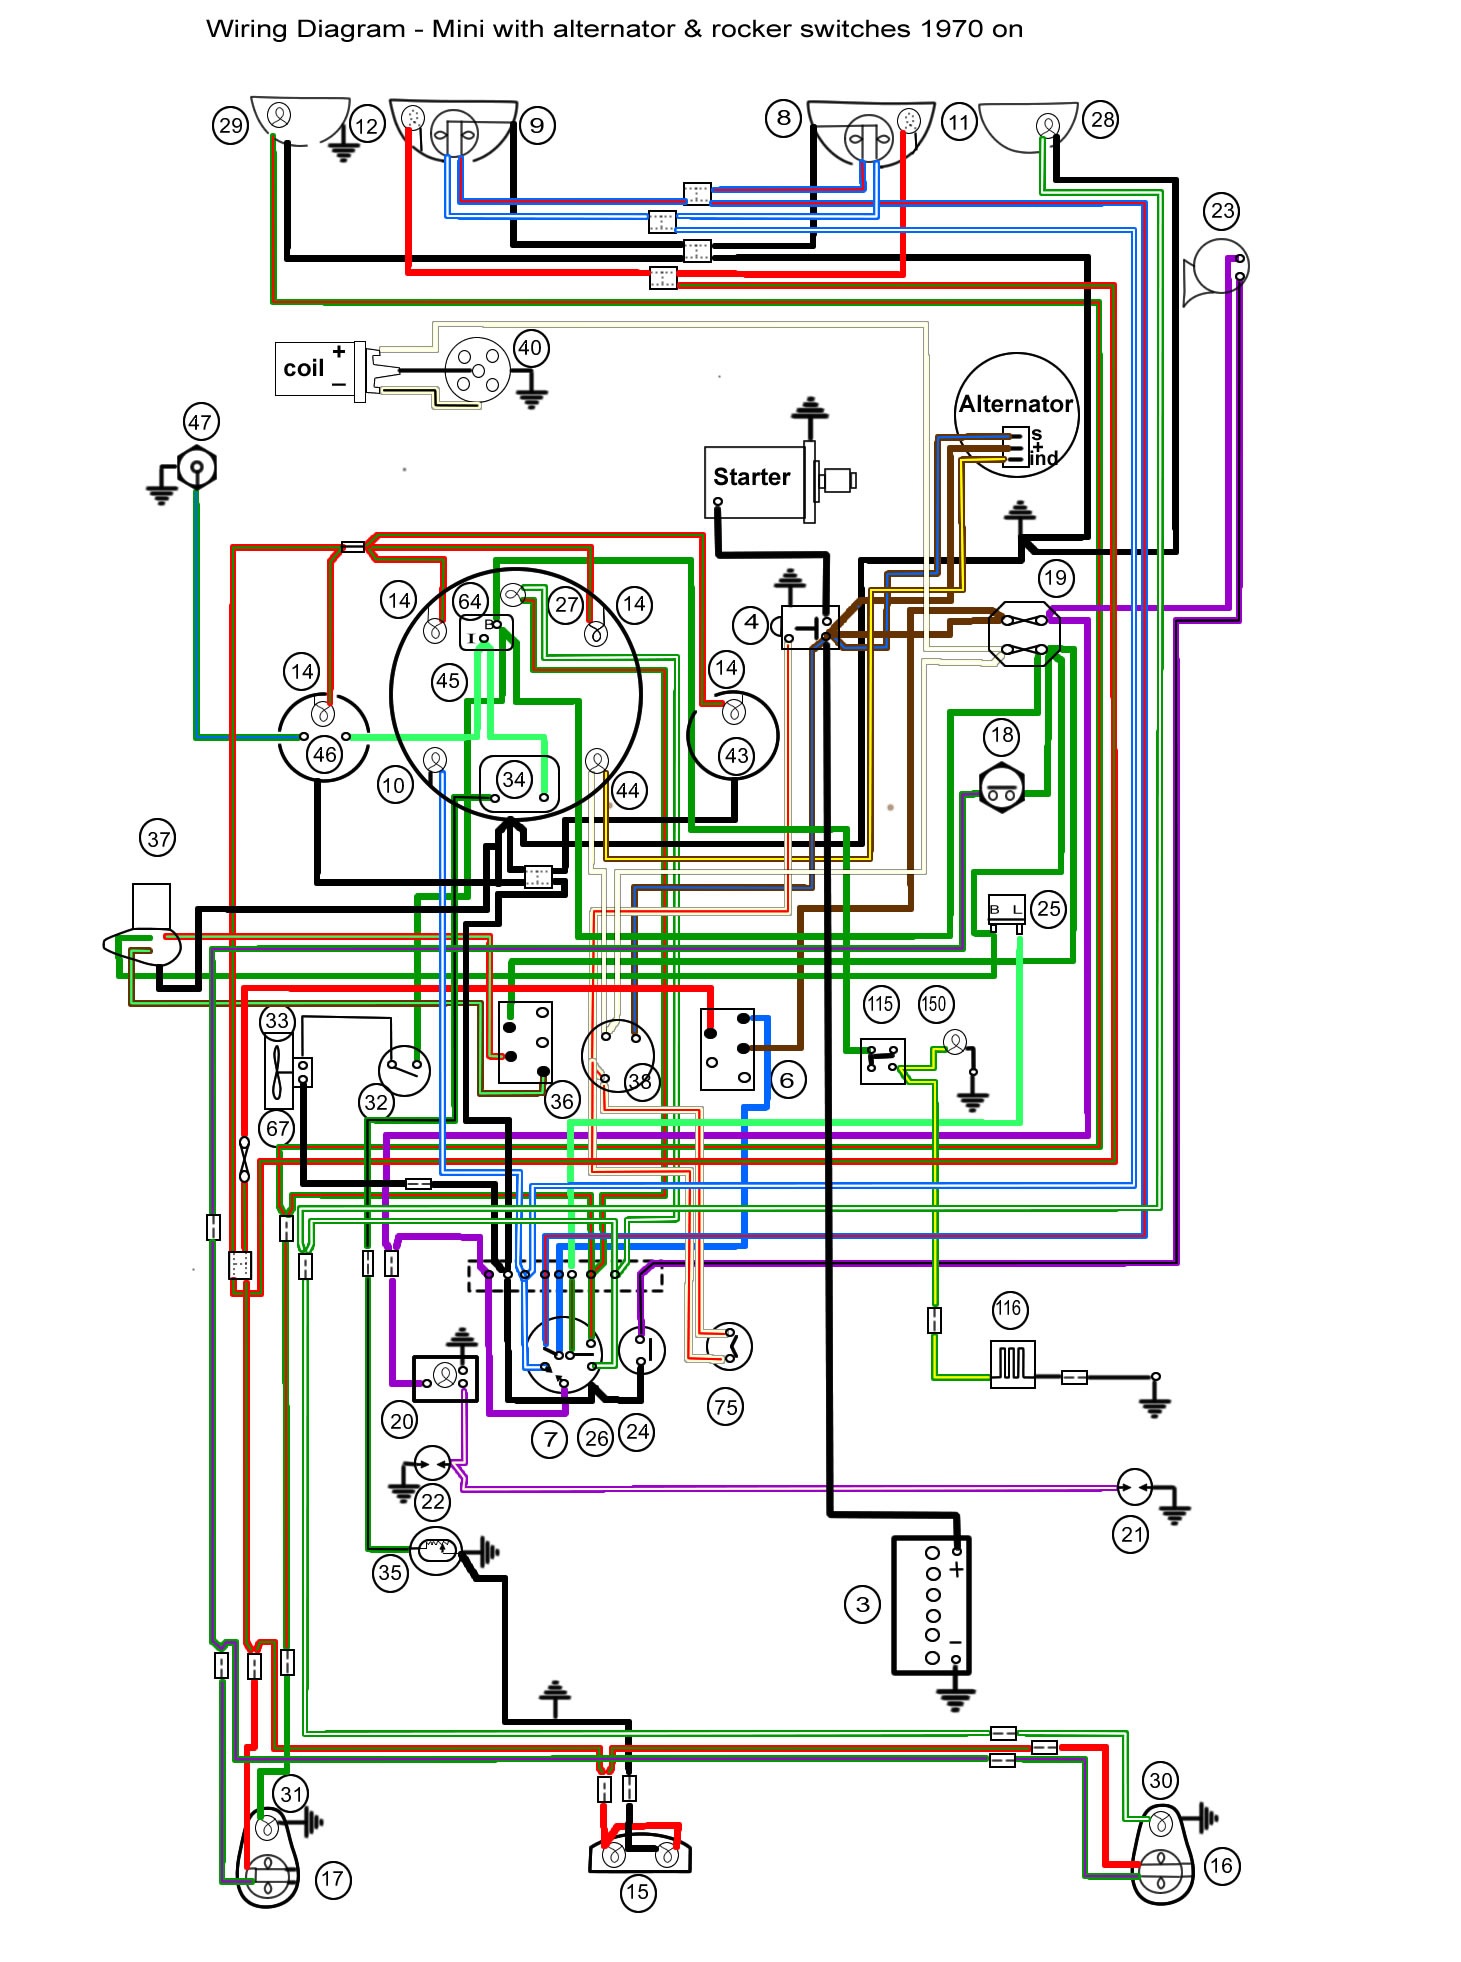 Electrical ColourWiringDiagram minifinity the classic mini forum and resource \u2022 view topic austin mini 1970 wiring diagram at webbmarketing.co